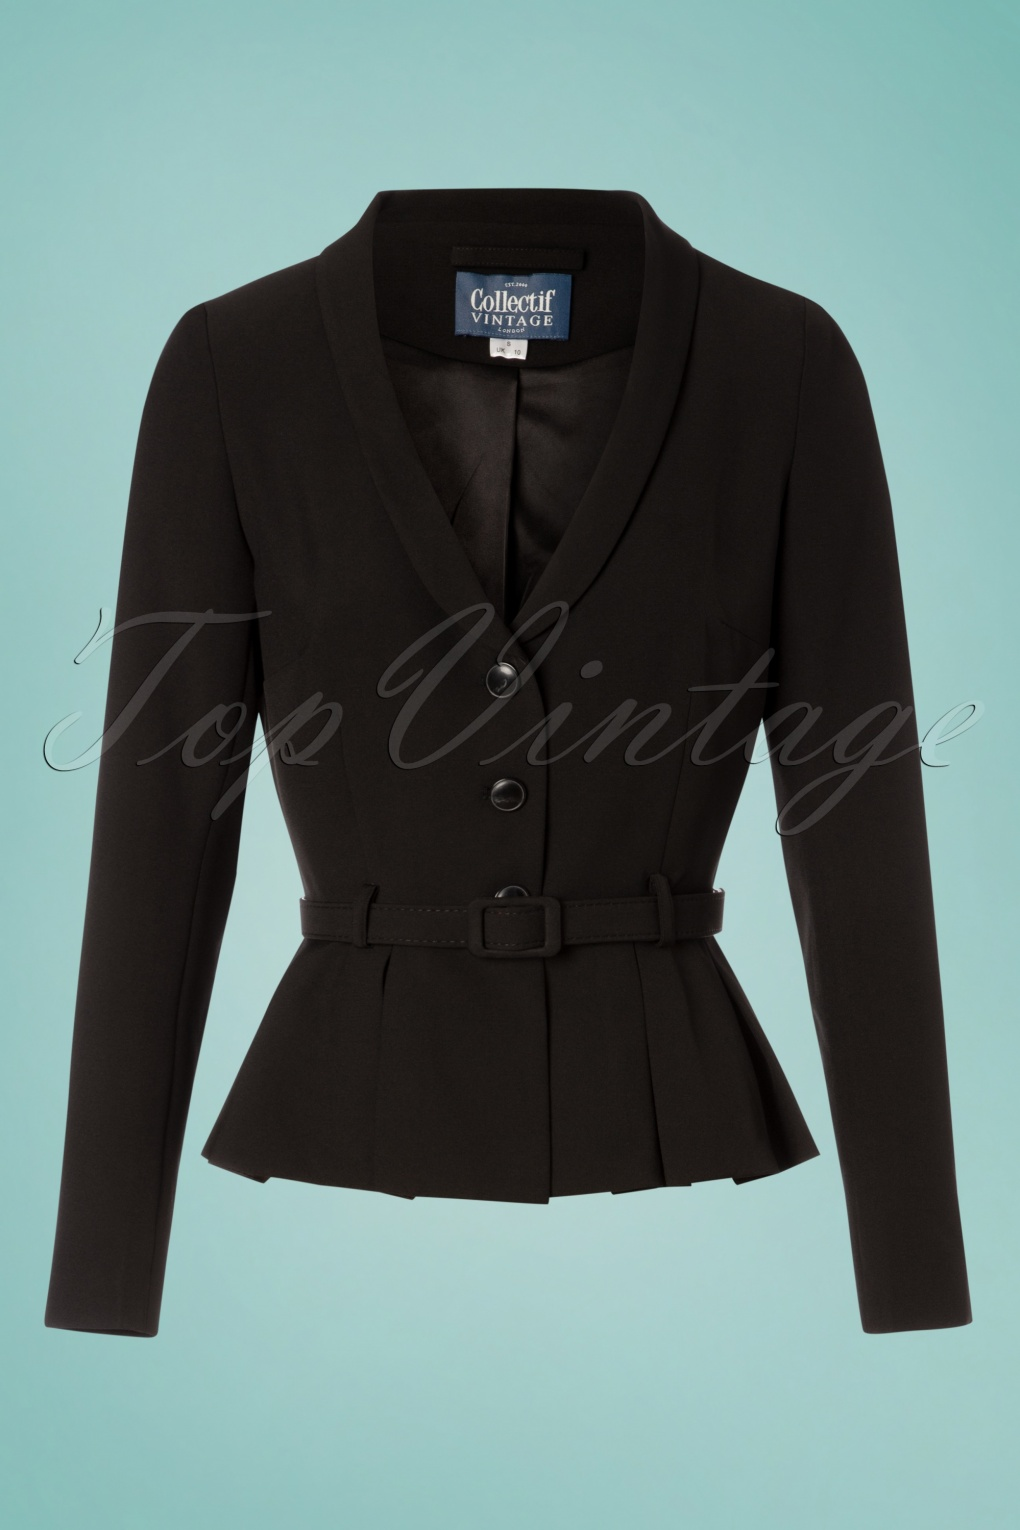 1950s Jackets, Coats, Bolero | Swing, Pin Up, Rockabilly 40s Alana Suit Jacket in Black £69.54 AT vintagedancer.com